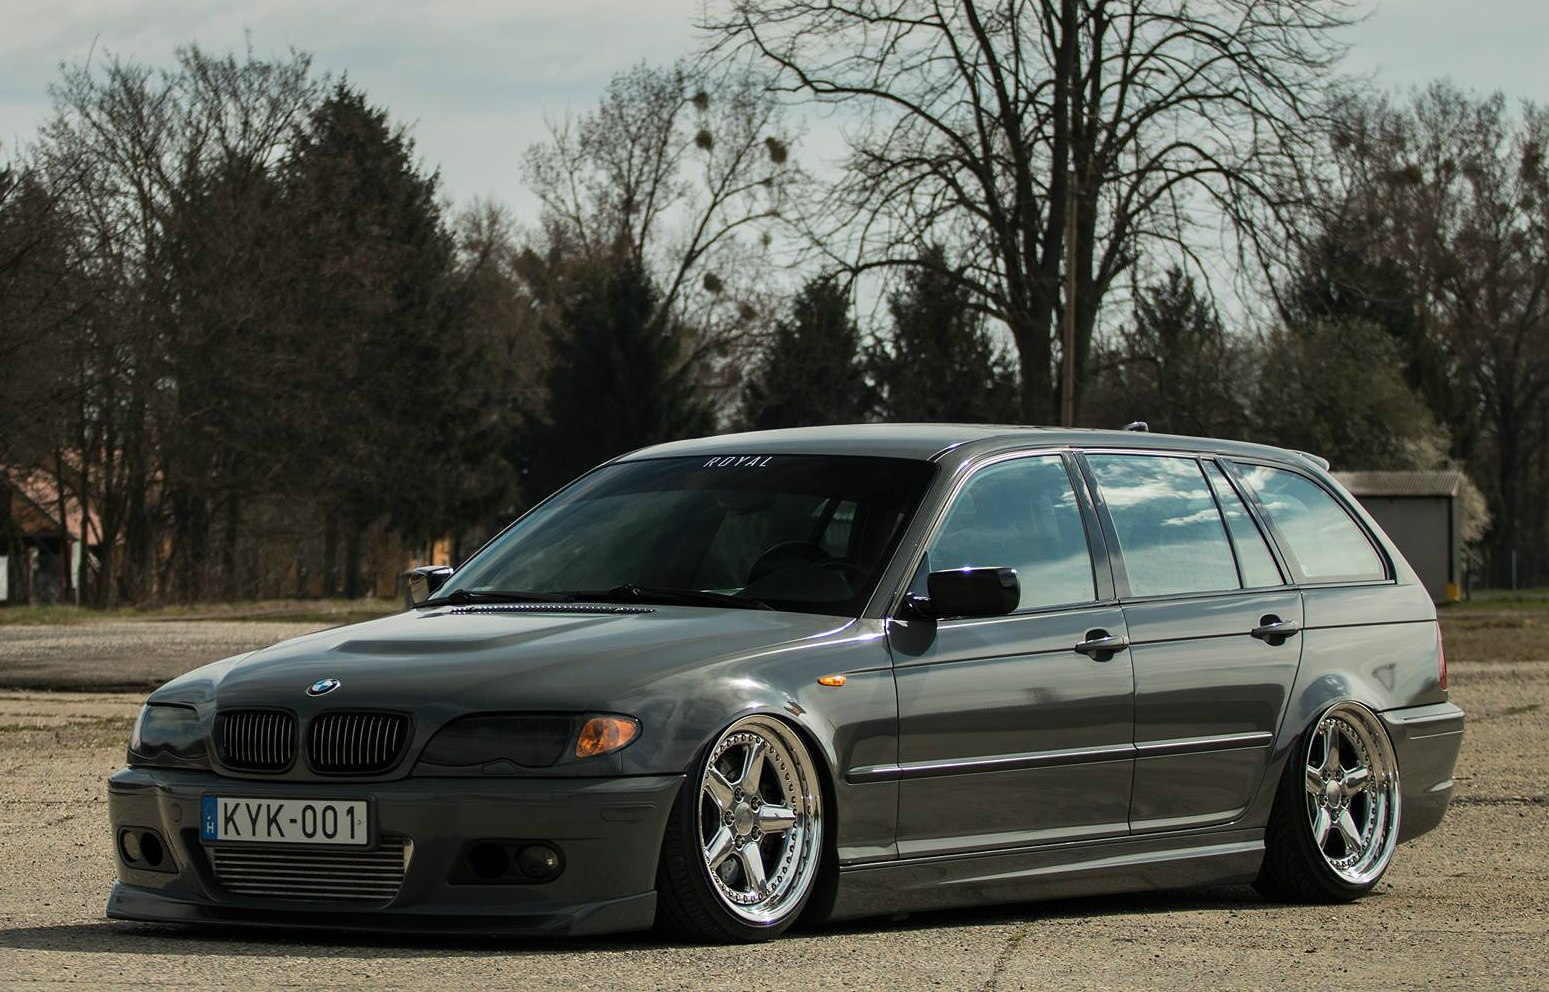 Bmw E46 Touring Bmw E46 M3 Touring Based On 318d Youtube